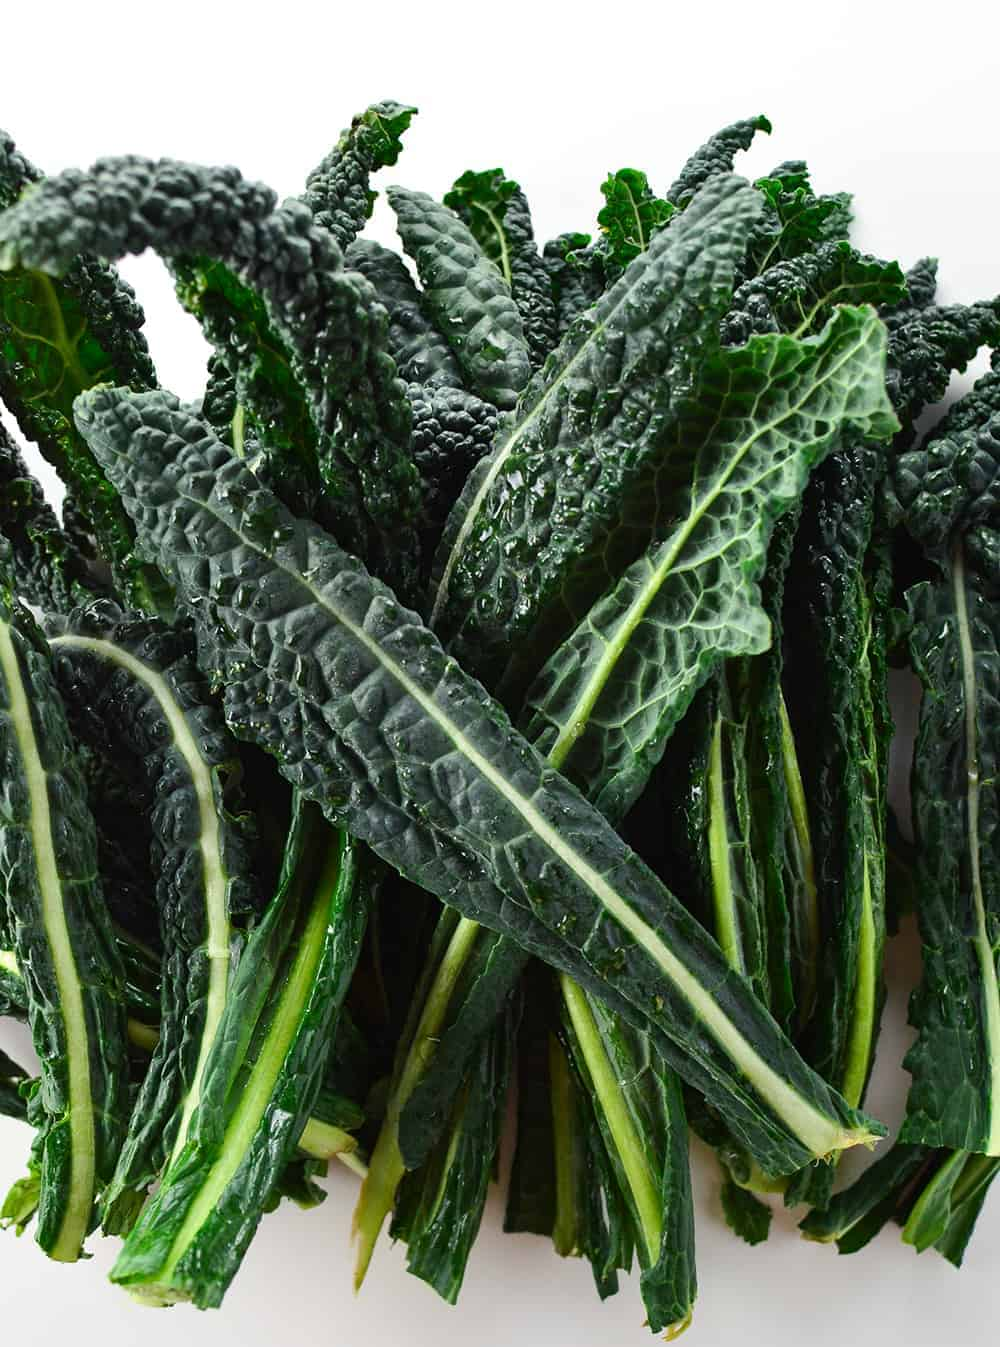 Use the freshest kale you can as it gives the recipe a fresh pungent taste